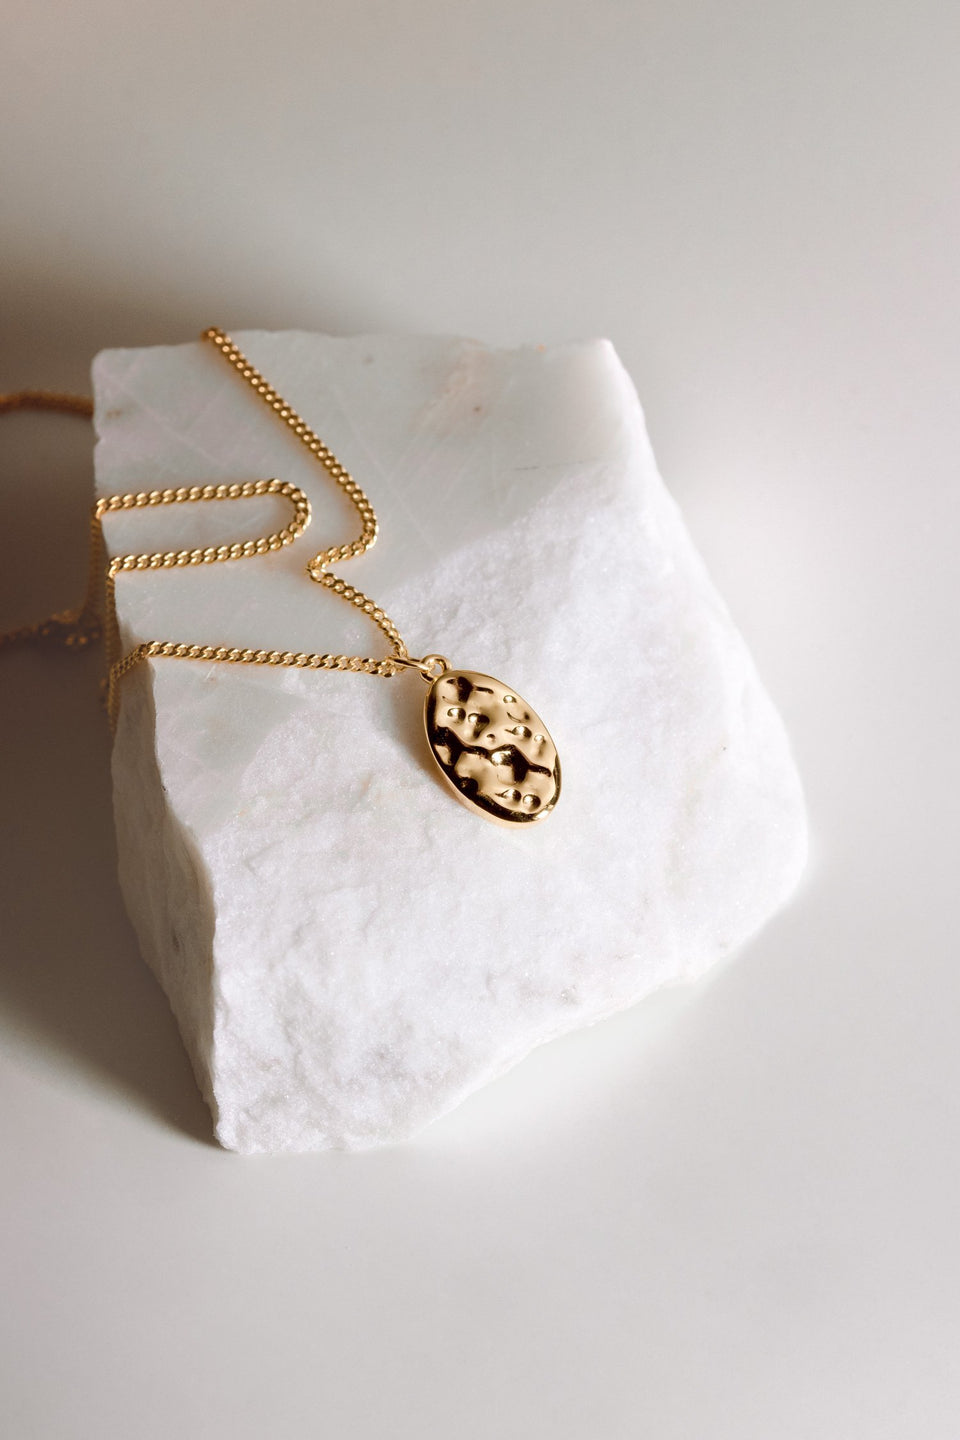 collections/Banner_Mineral-necklace.jpg